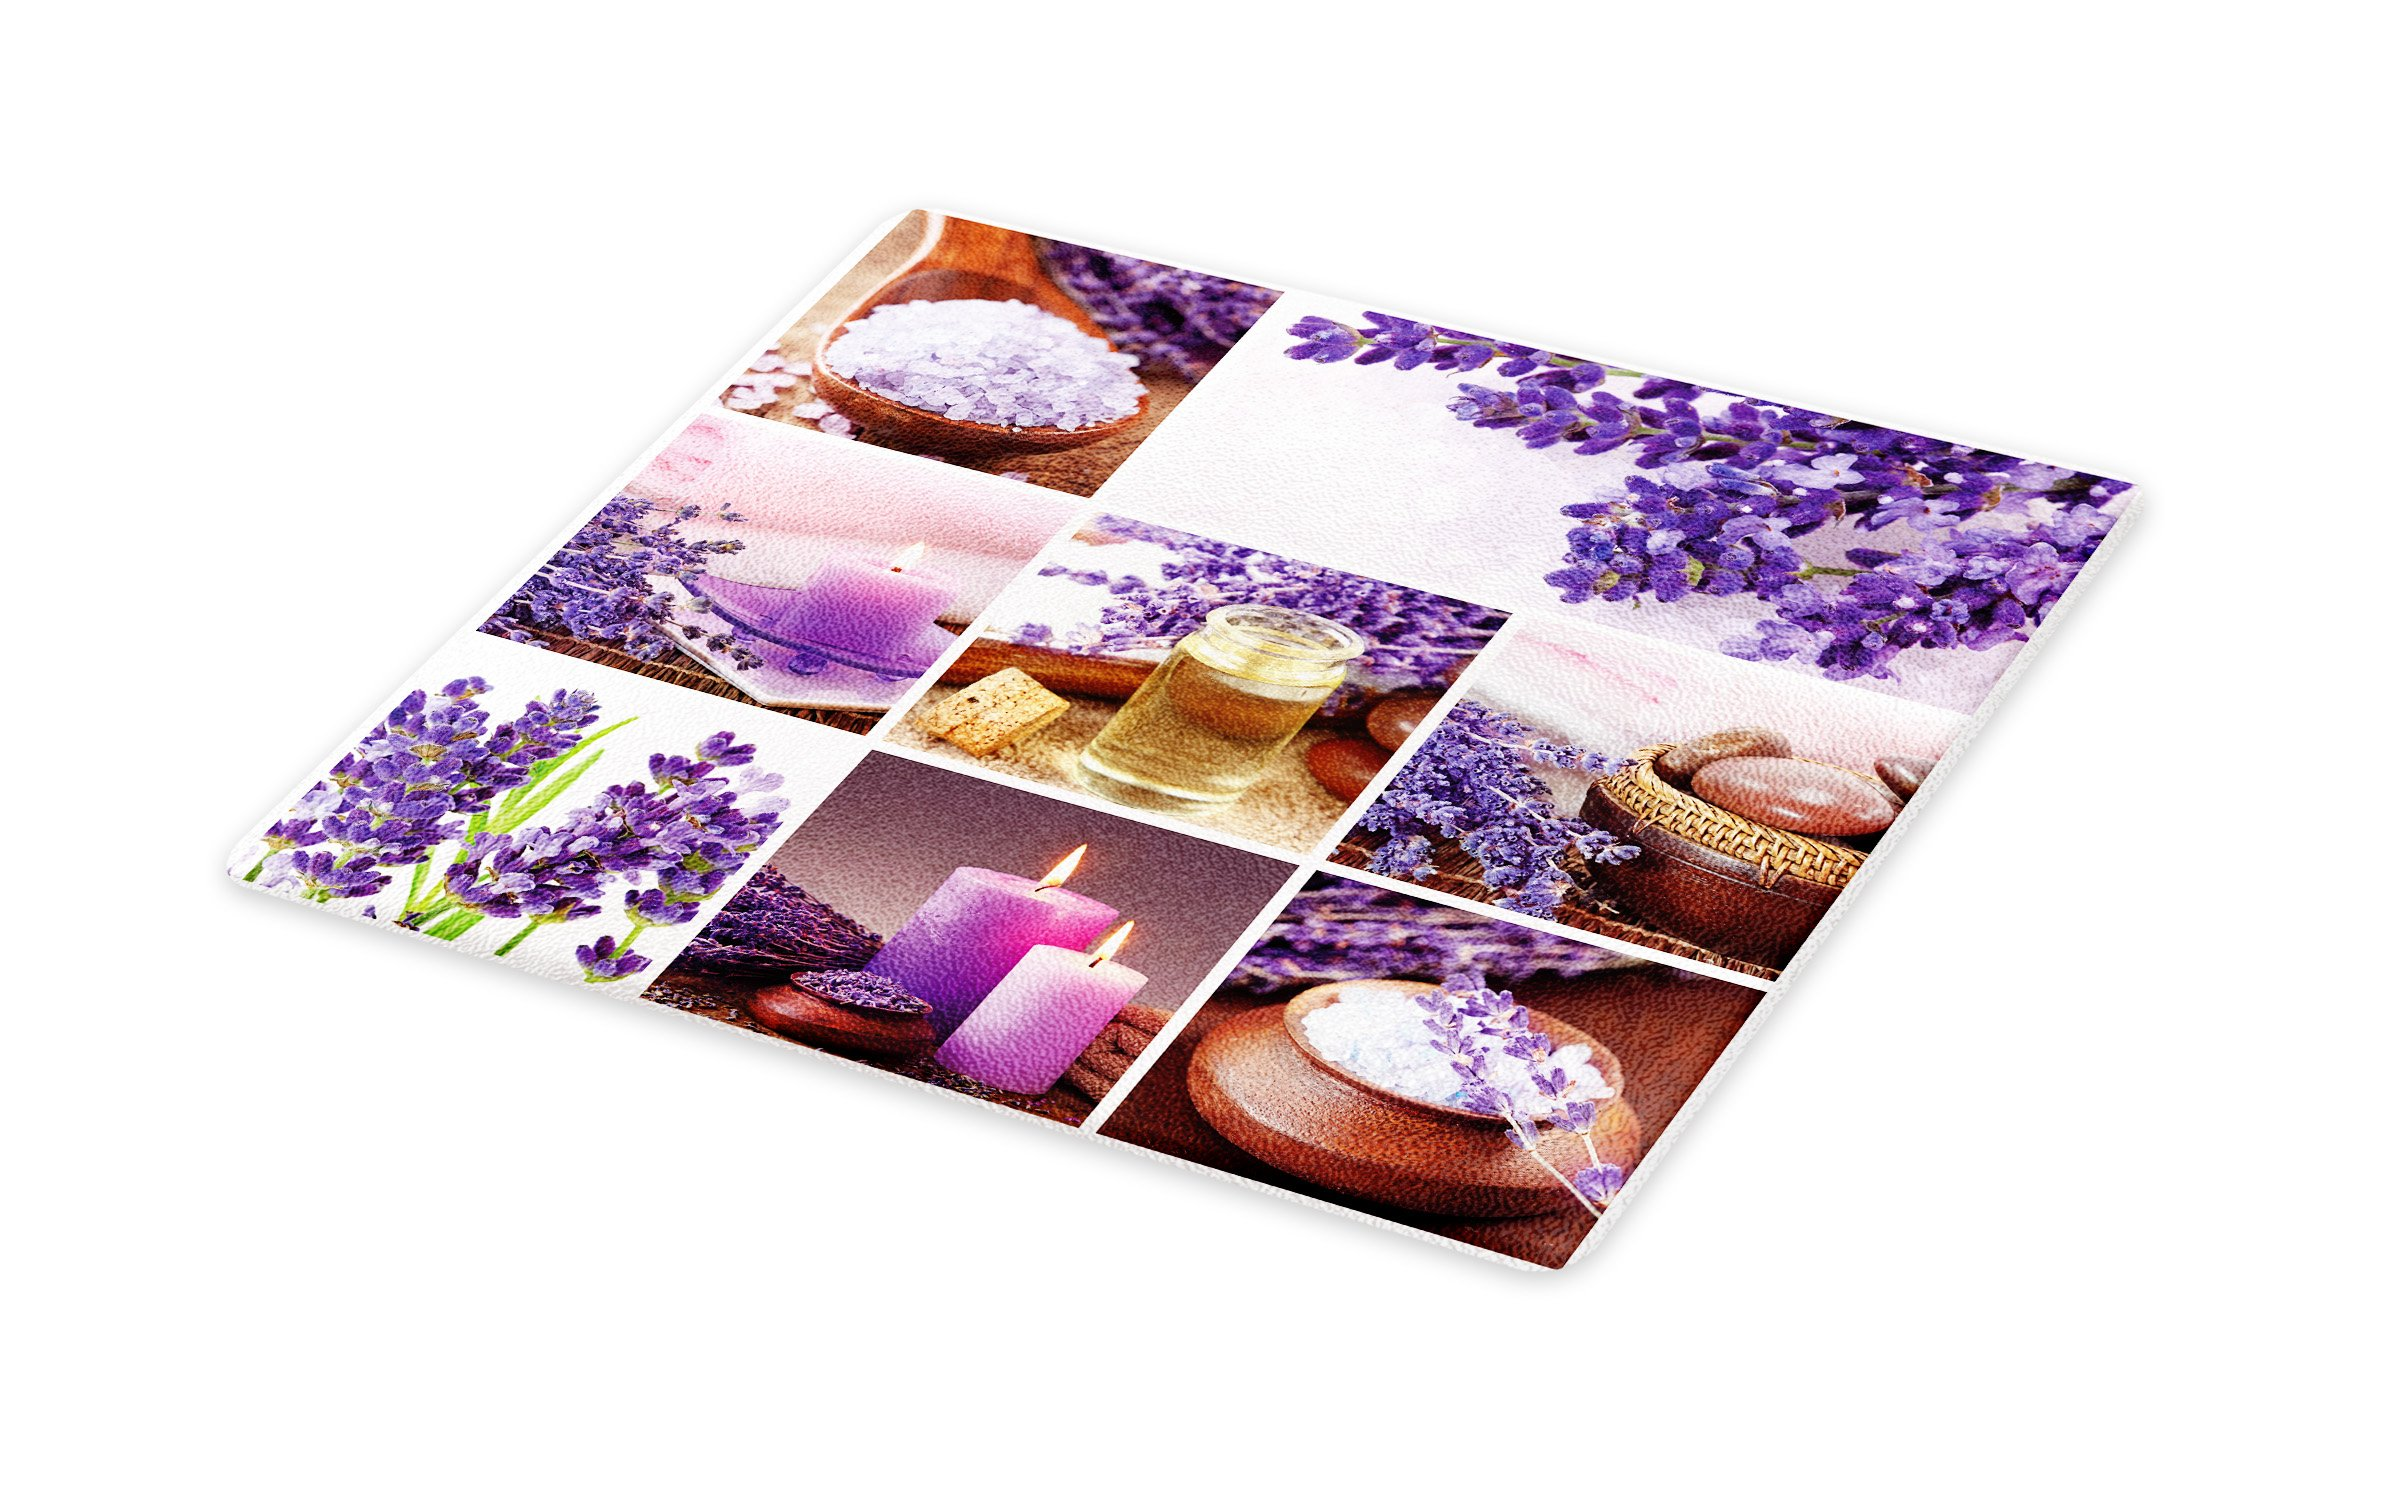 Lunarable Spa Cutting Board, Lavender Garden Alike Themed Relaxing Candles Stones Herbal Salt Elements Image, Decorative Tempered Glass Cutting and Serving Board, Large Size, Purple and White